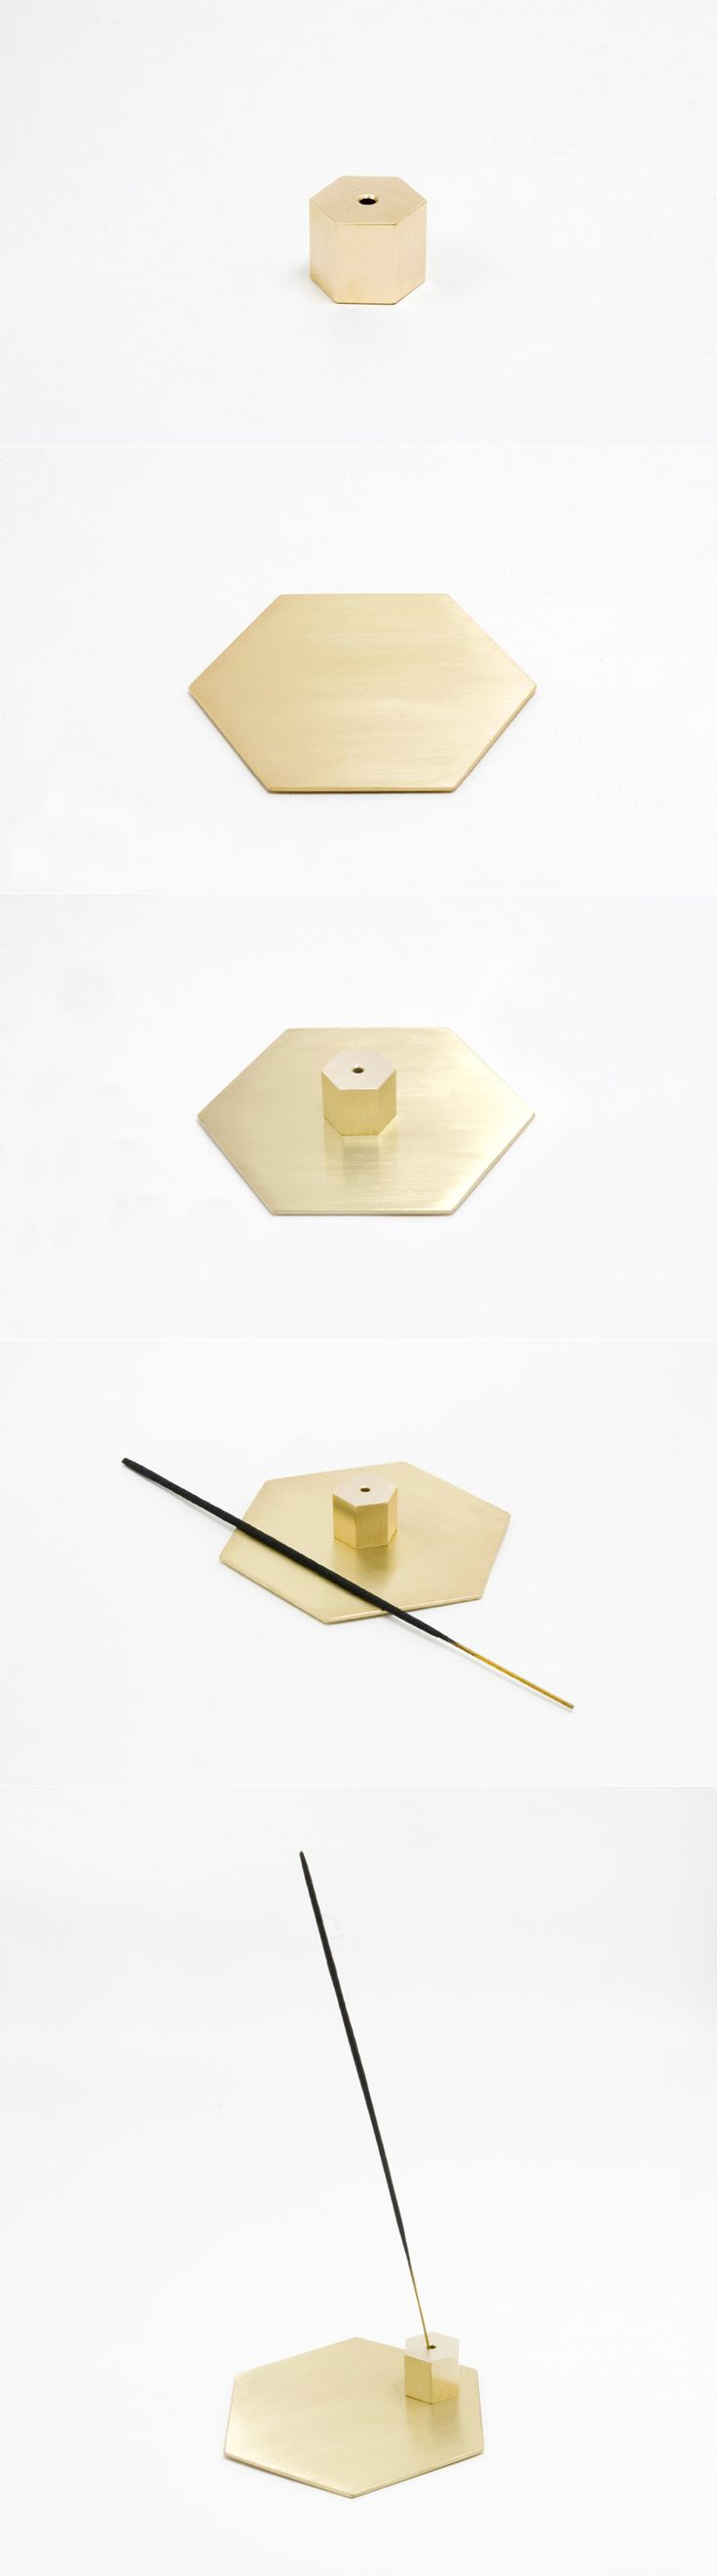 BRASS INCENSE HOLDER & COASTER SET(HEXAGON)